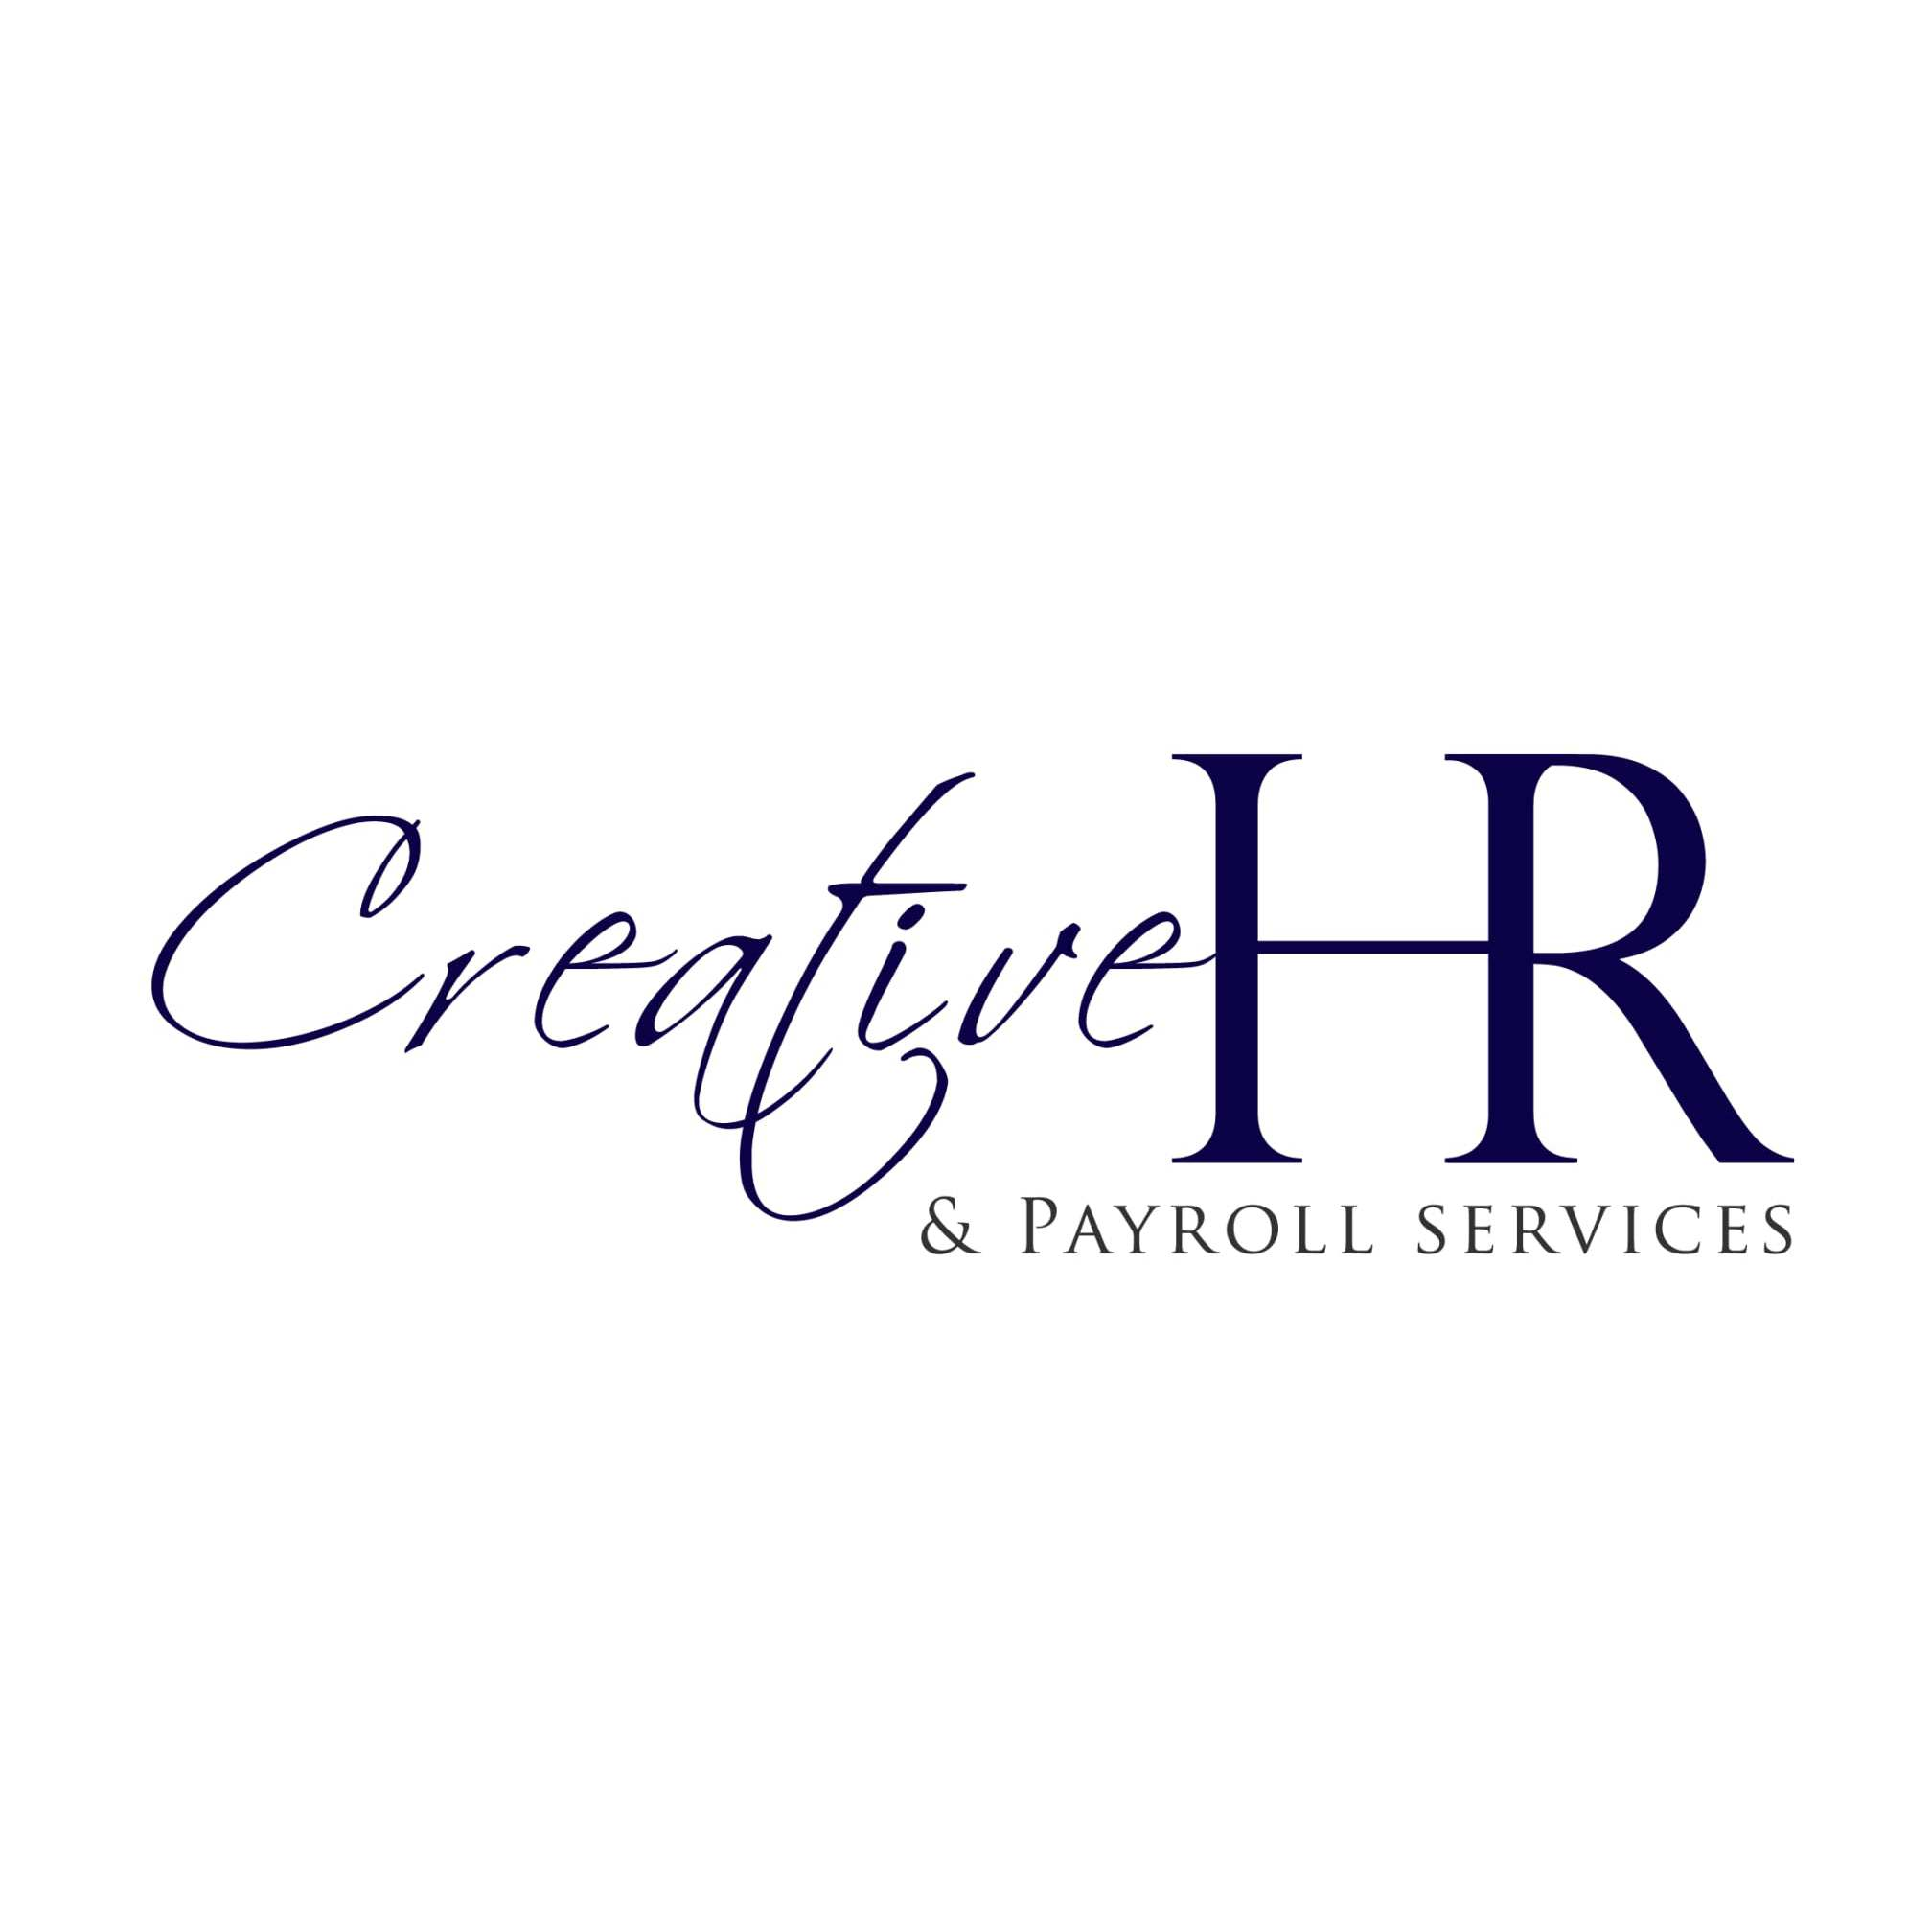 Creative HR & Payroll Services - Grays, Essex  - 07539 435983 | ShowMeLocal.com